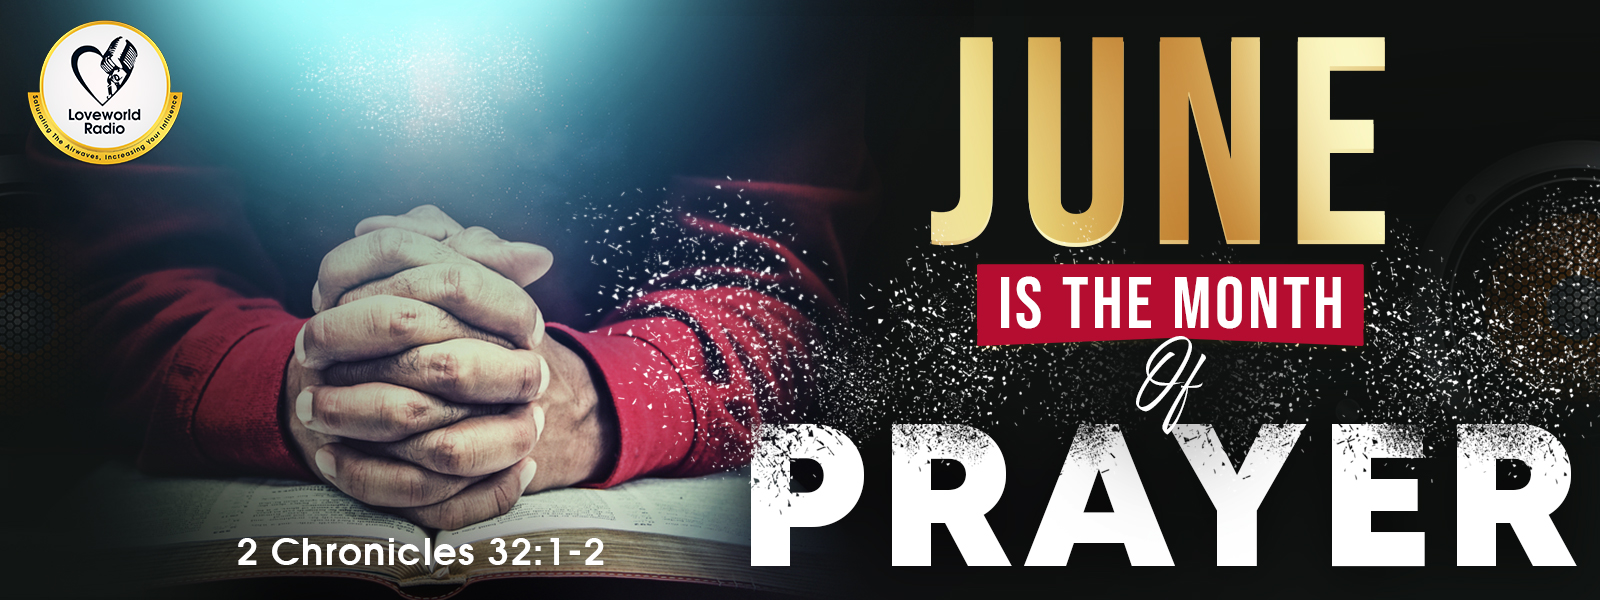 WELCOME TO THE MONTH OF JUNE (PRAYER)